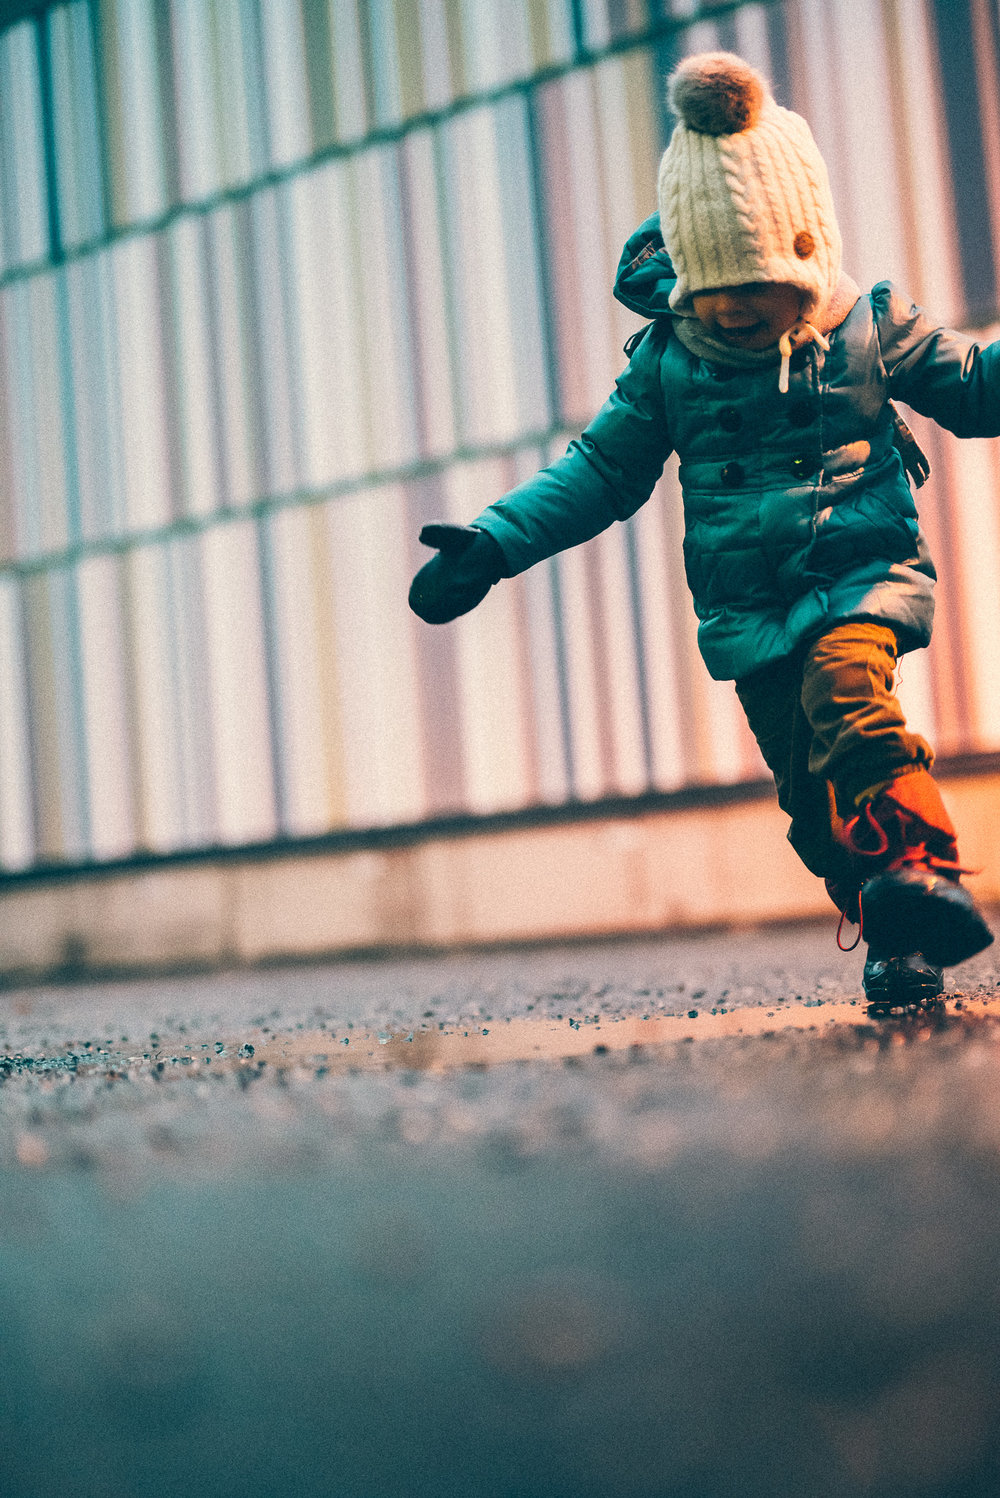 Child running through a puddle in parking lot